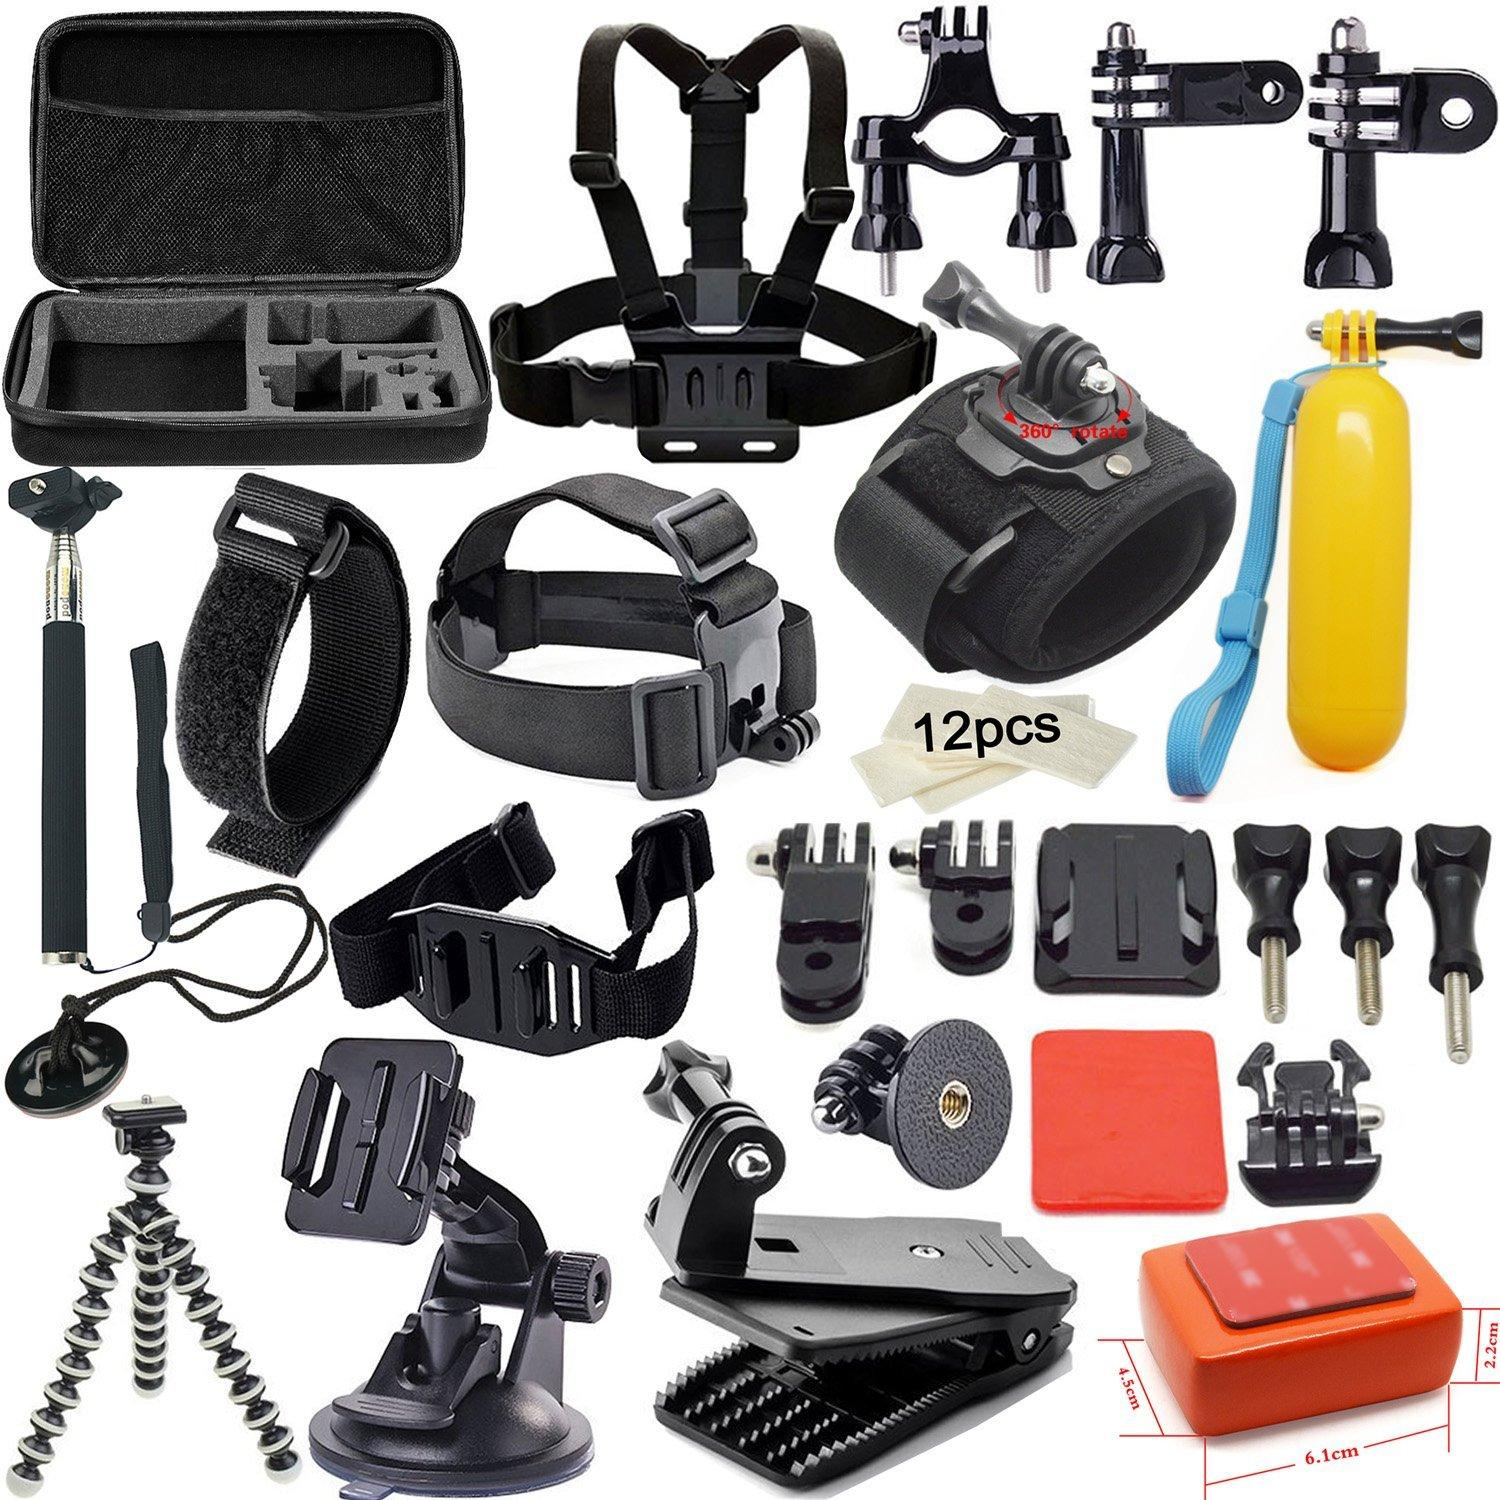 $29.99 Soft Digits 42 in 1 Accessory kit Accessories for Gopro Hero4